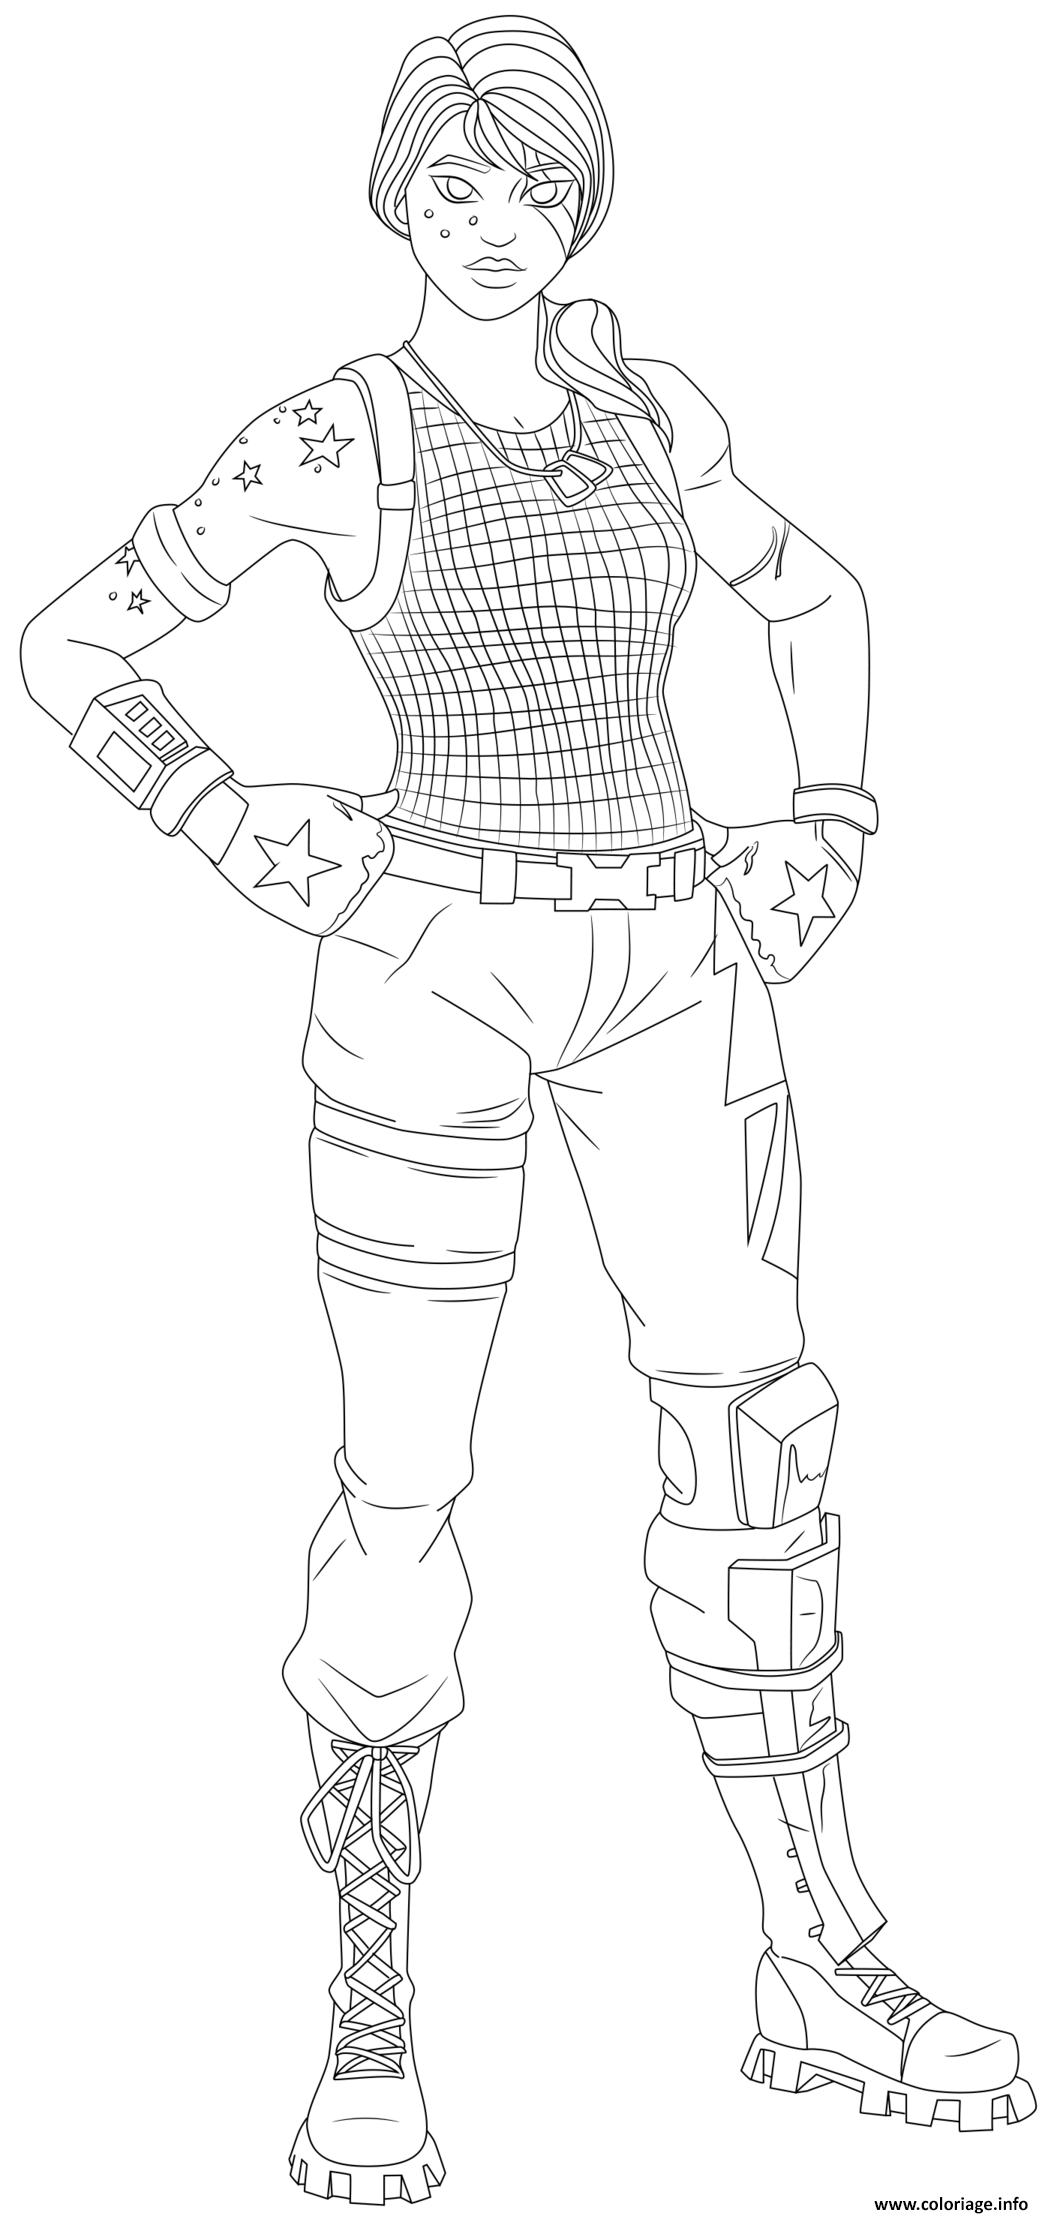 Coloriage Sparkle Specialist Fortnite Skin Hd Jecolorie Com